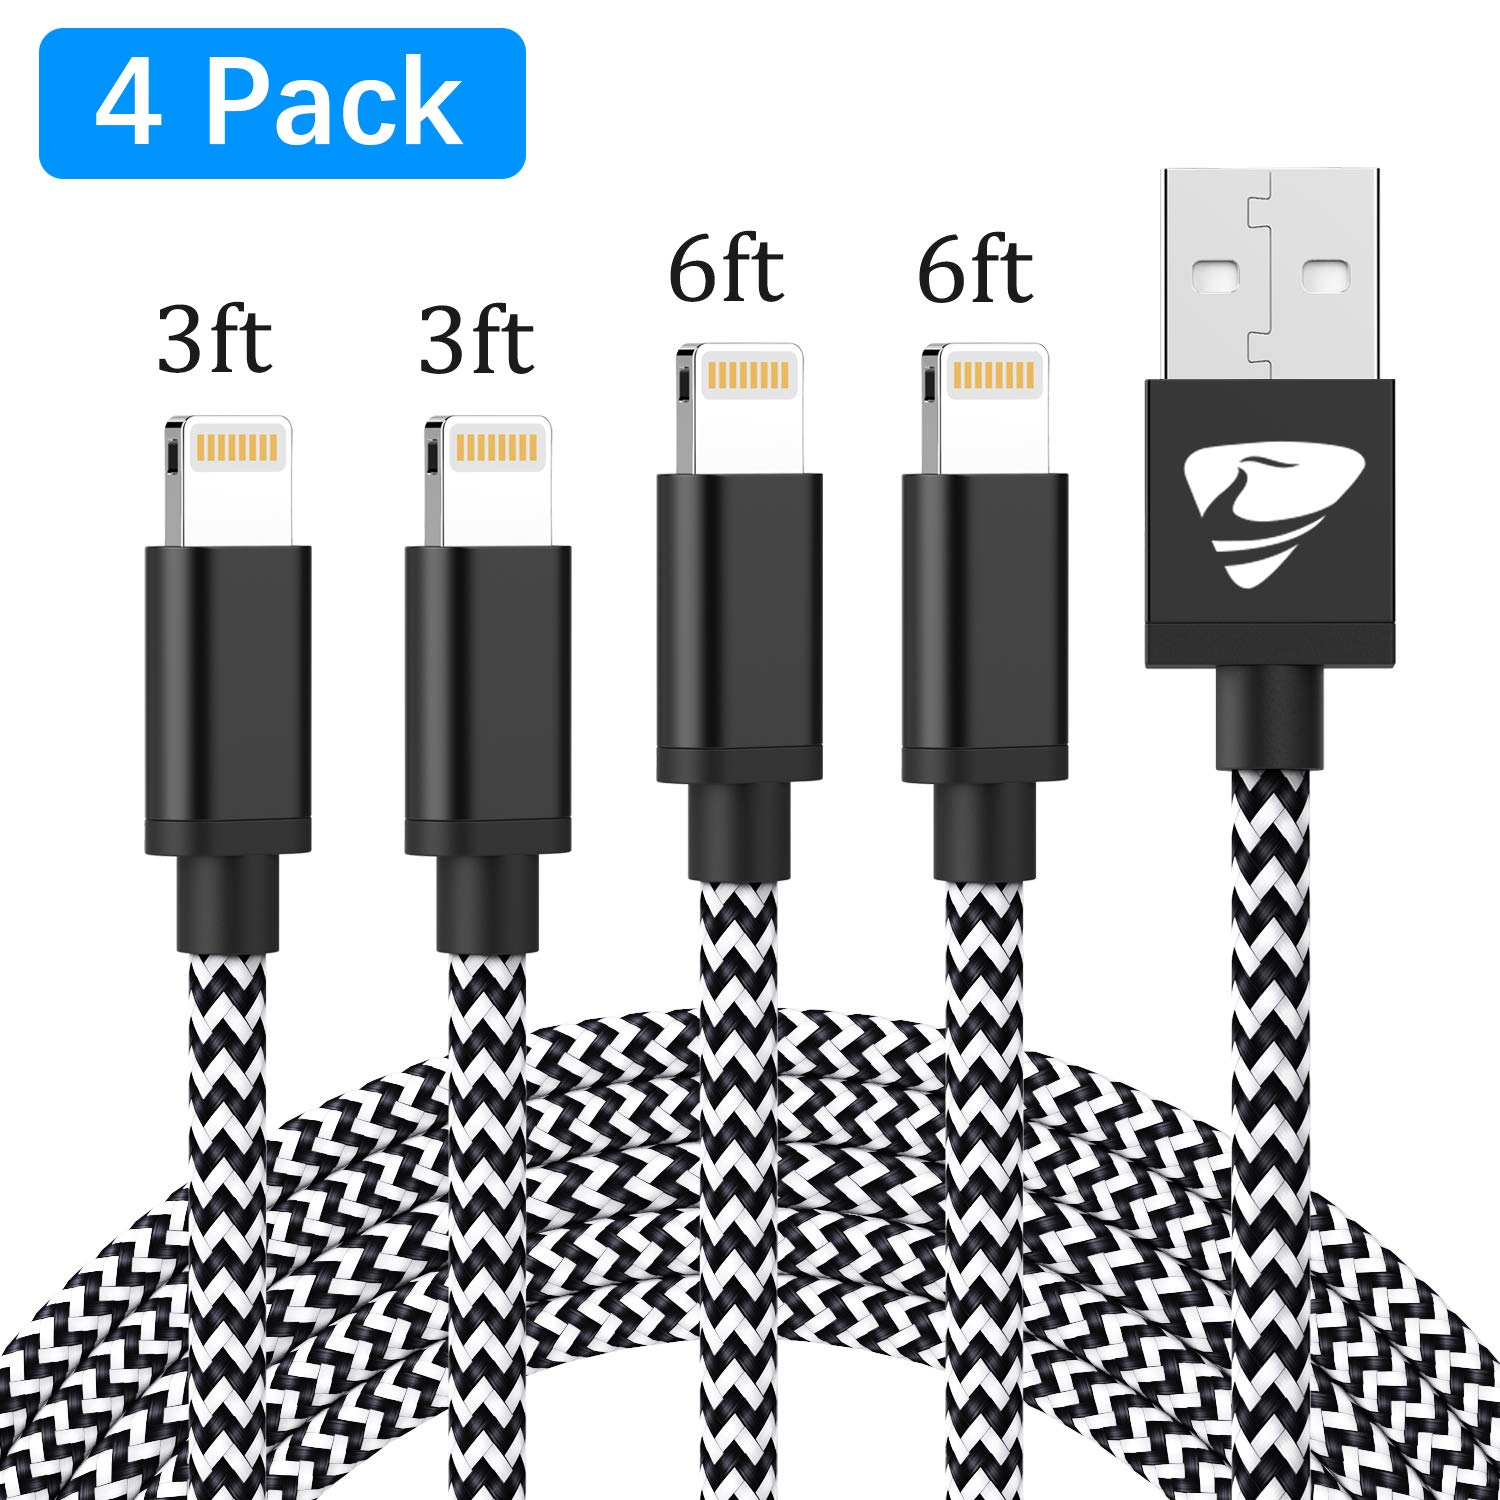 iPhone Charger MFi Certified Fast iPhone Charging Cord Aioneus 4Pack 6FT 6FT 3FT 3FT Nylon Braided Cable Charger Cord Compatible with iPhone Xs X XR 8 8 Plus 7 7 Plus 6 6s Plus 5s 5c SE iPad by Aioneus